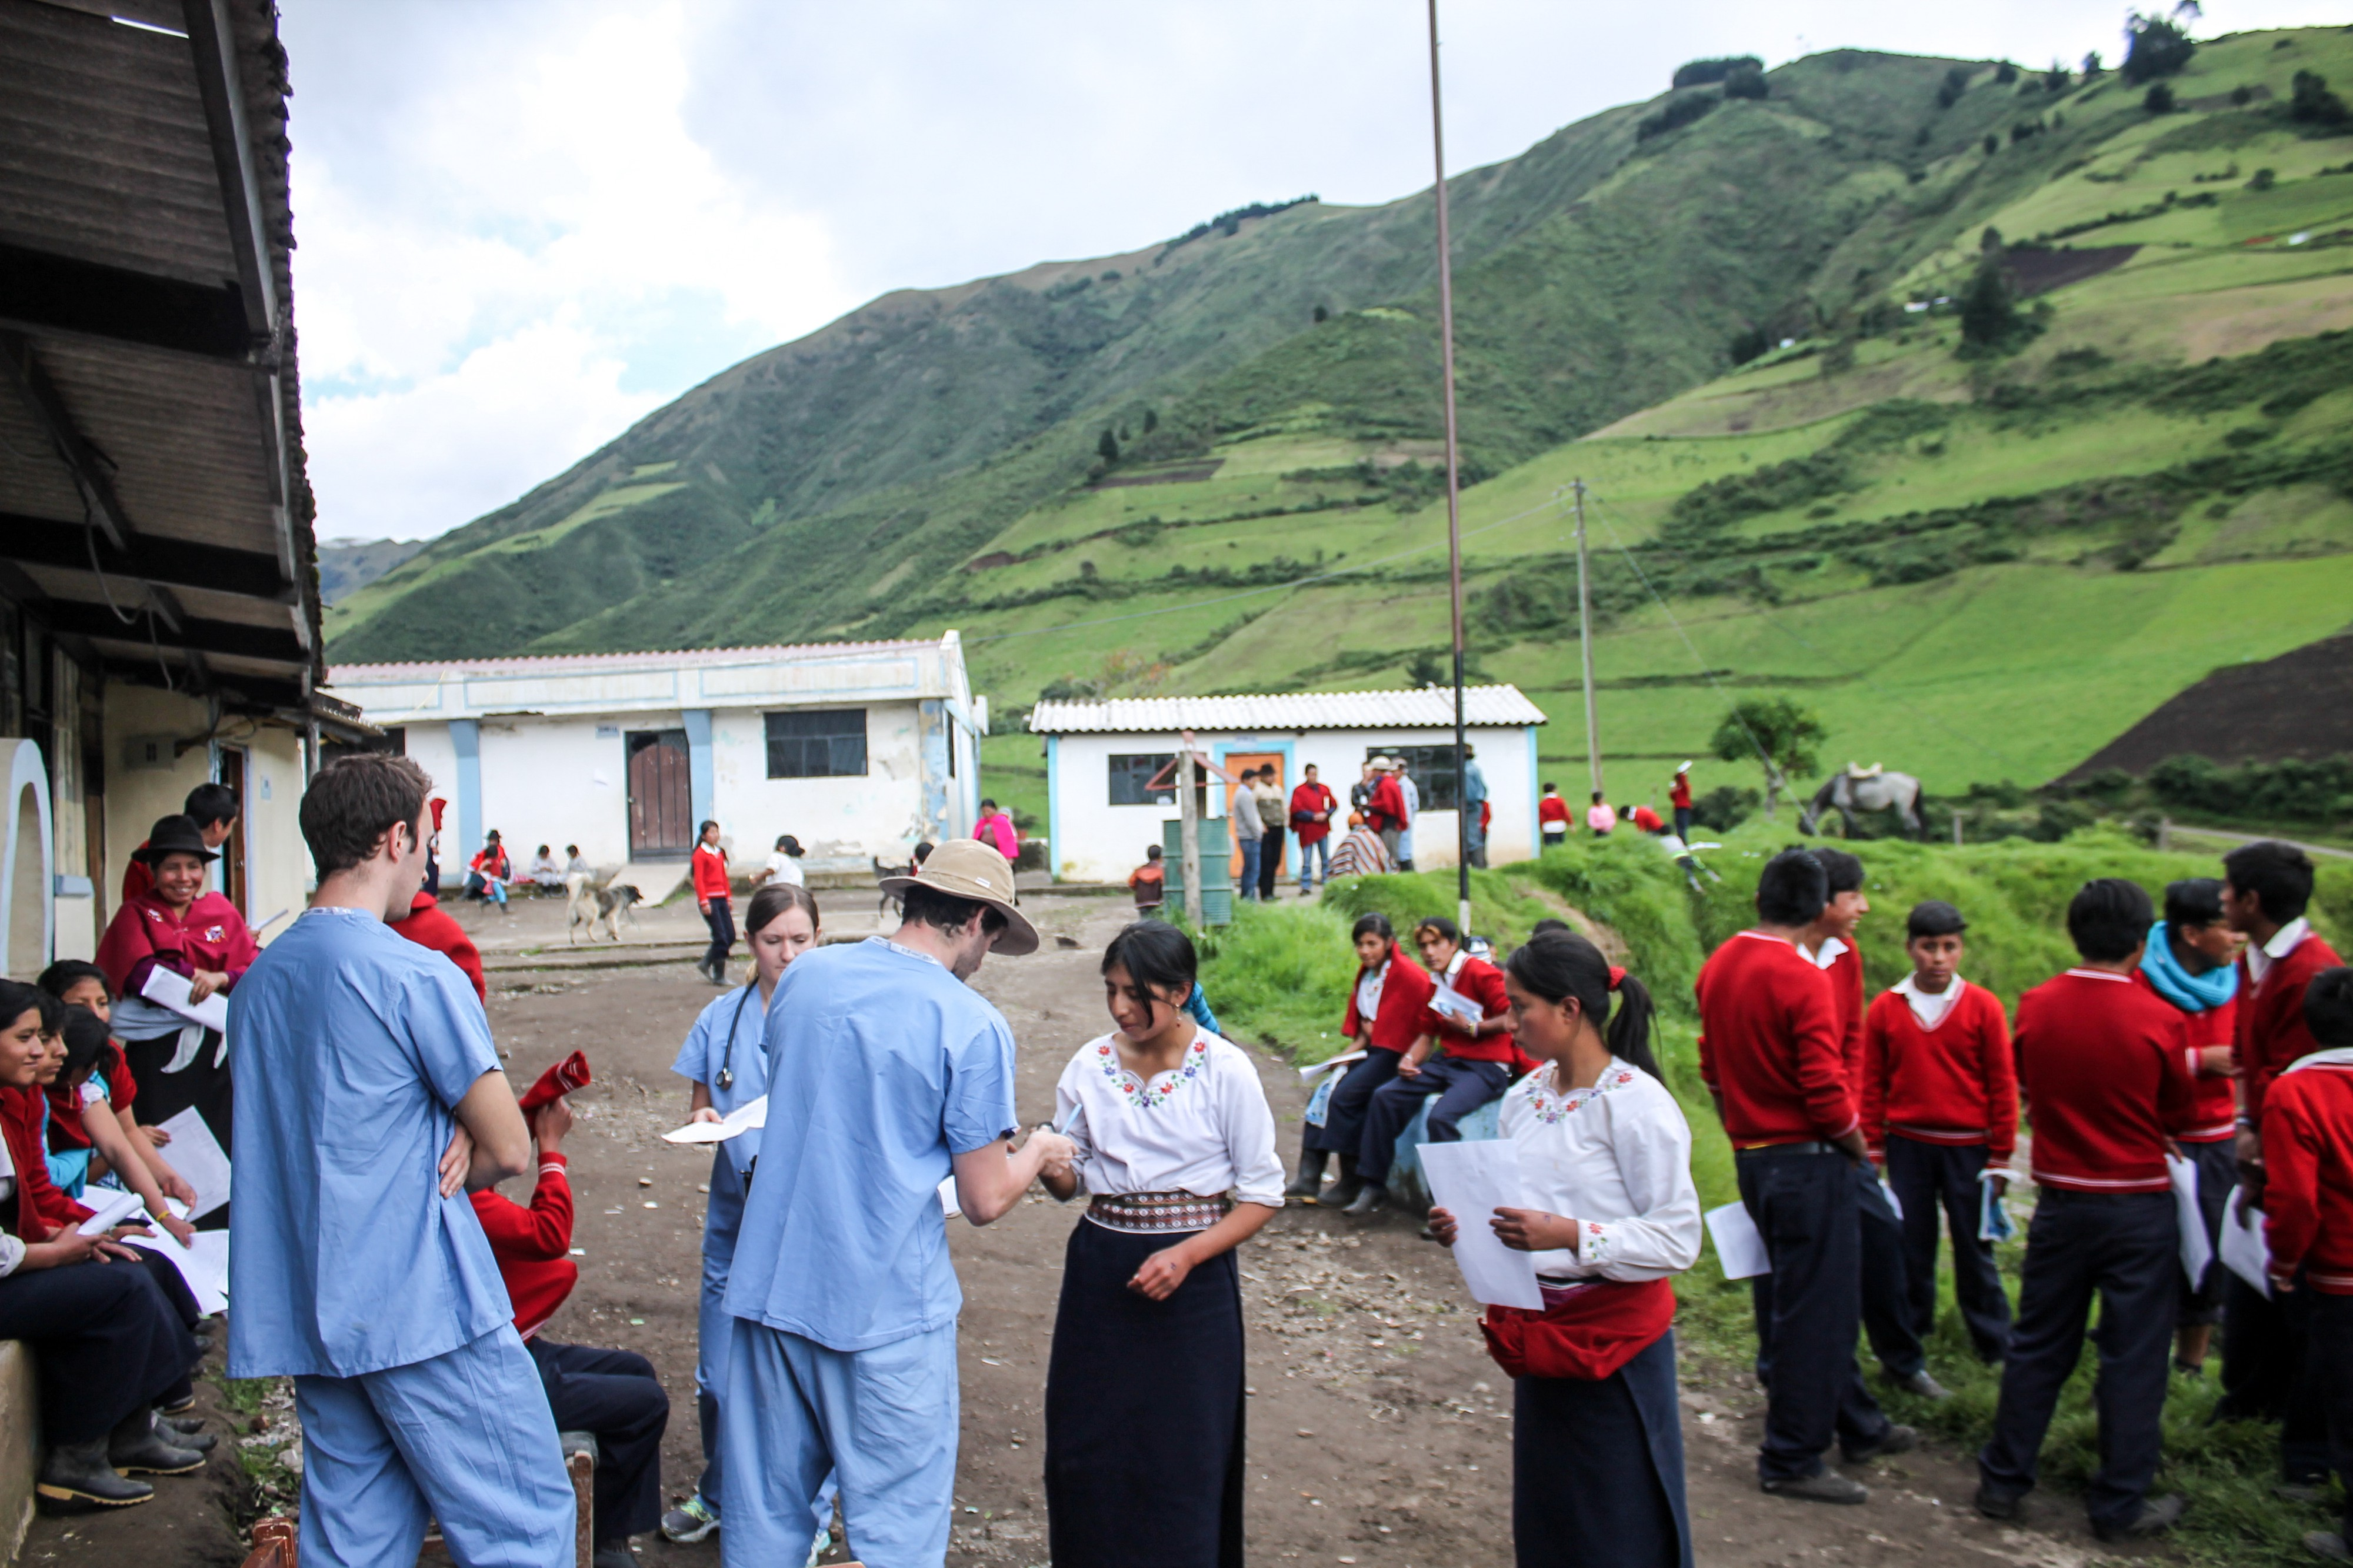 Reflections From Ecuador - Stories from Temple's Narrative